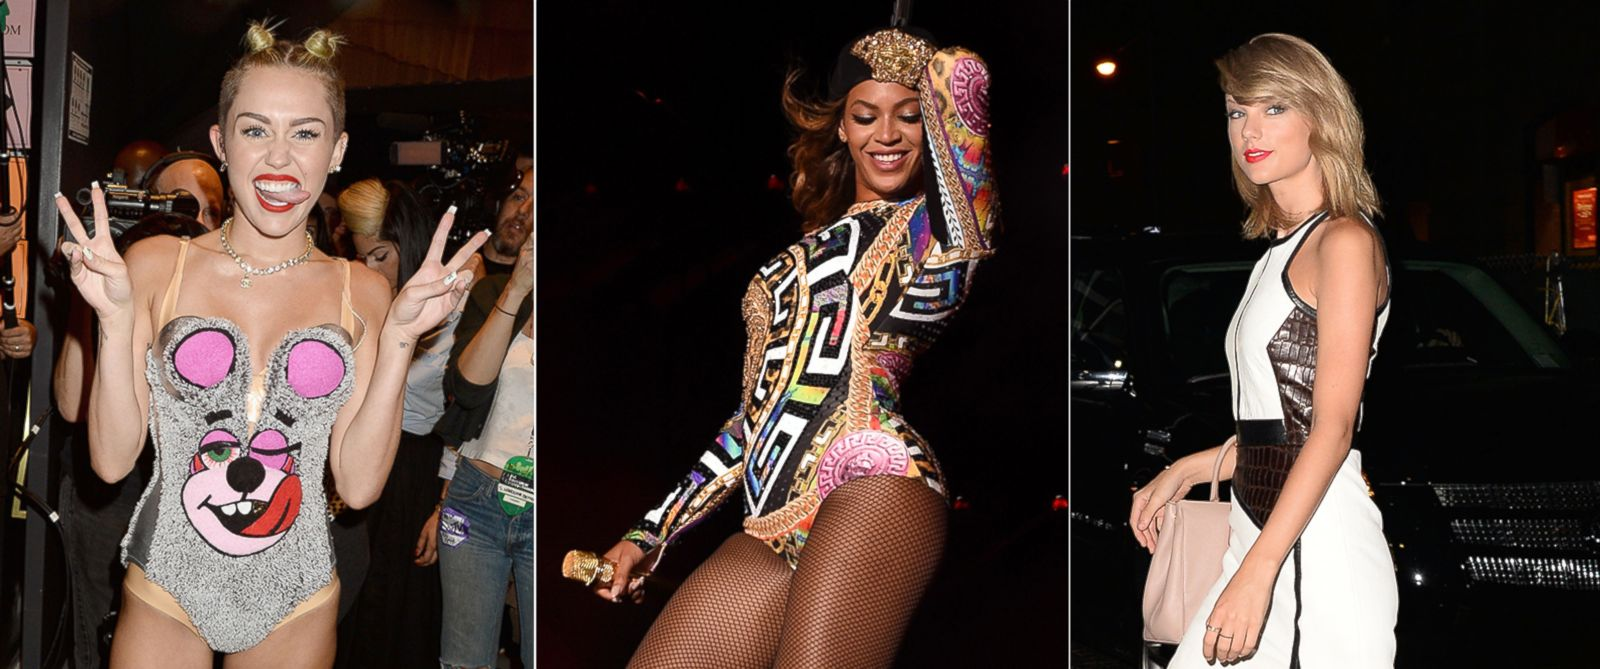 PHOTO: Miley Cyrus, seen at the 2013 VMAs on Aug. 25, 2013, Beyonce Knowles, seen center at the Rose Bowl on Aug. 2, 2014, and Taylor Swift, right, seen on Aug. 13, 2014 in New York.